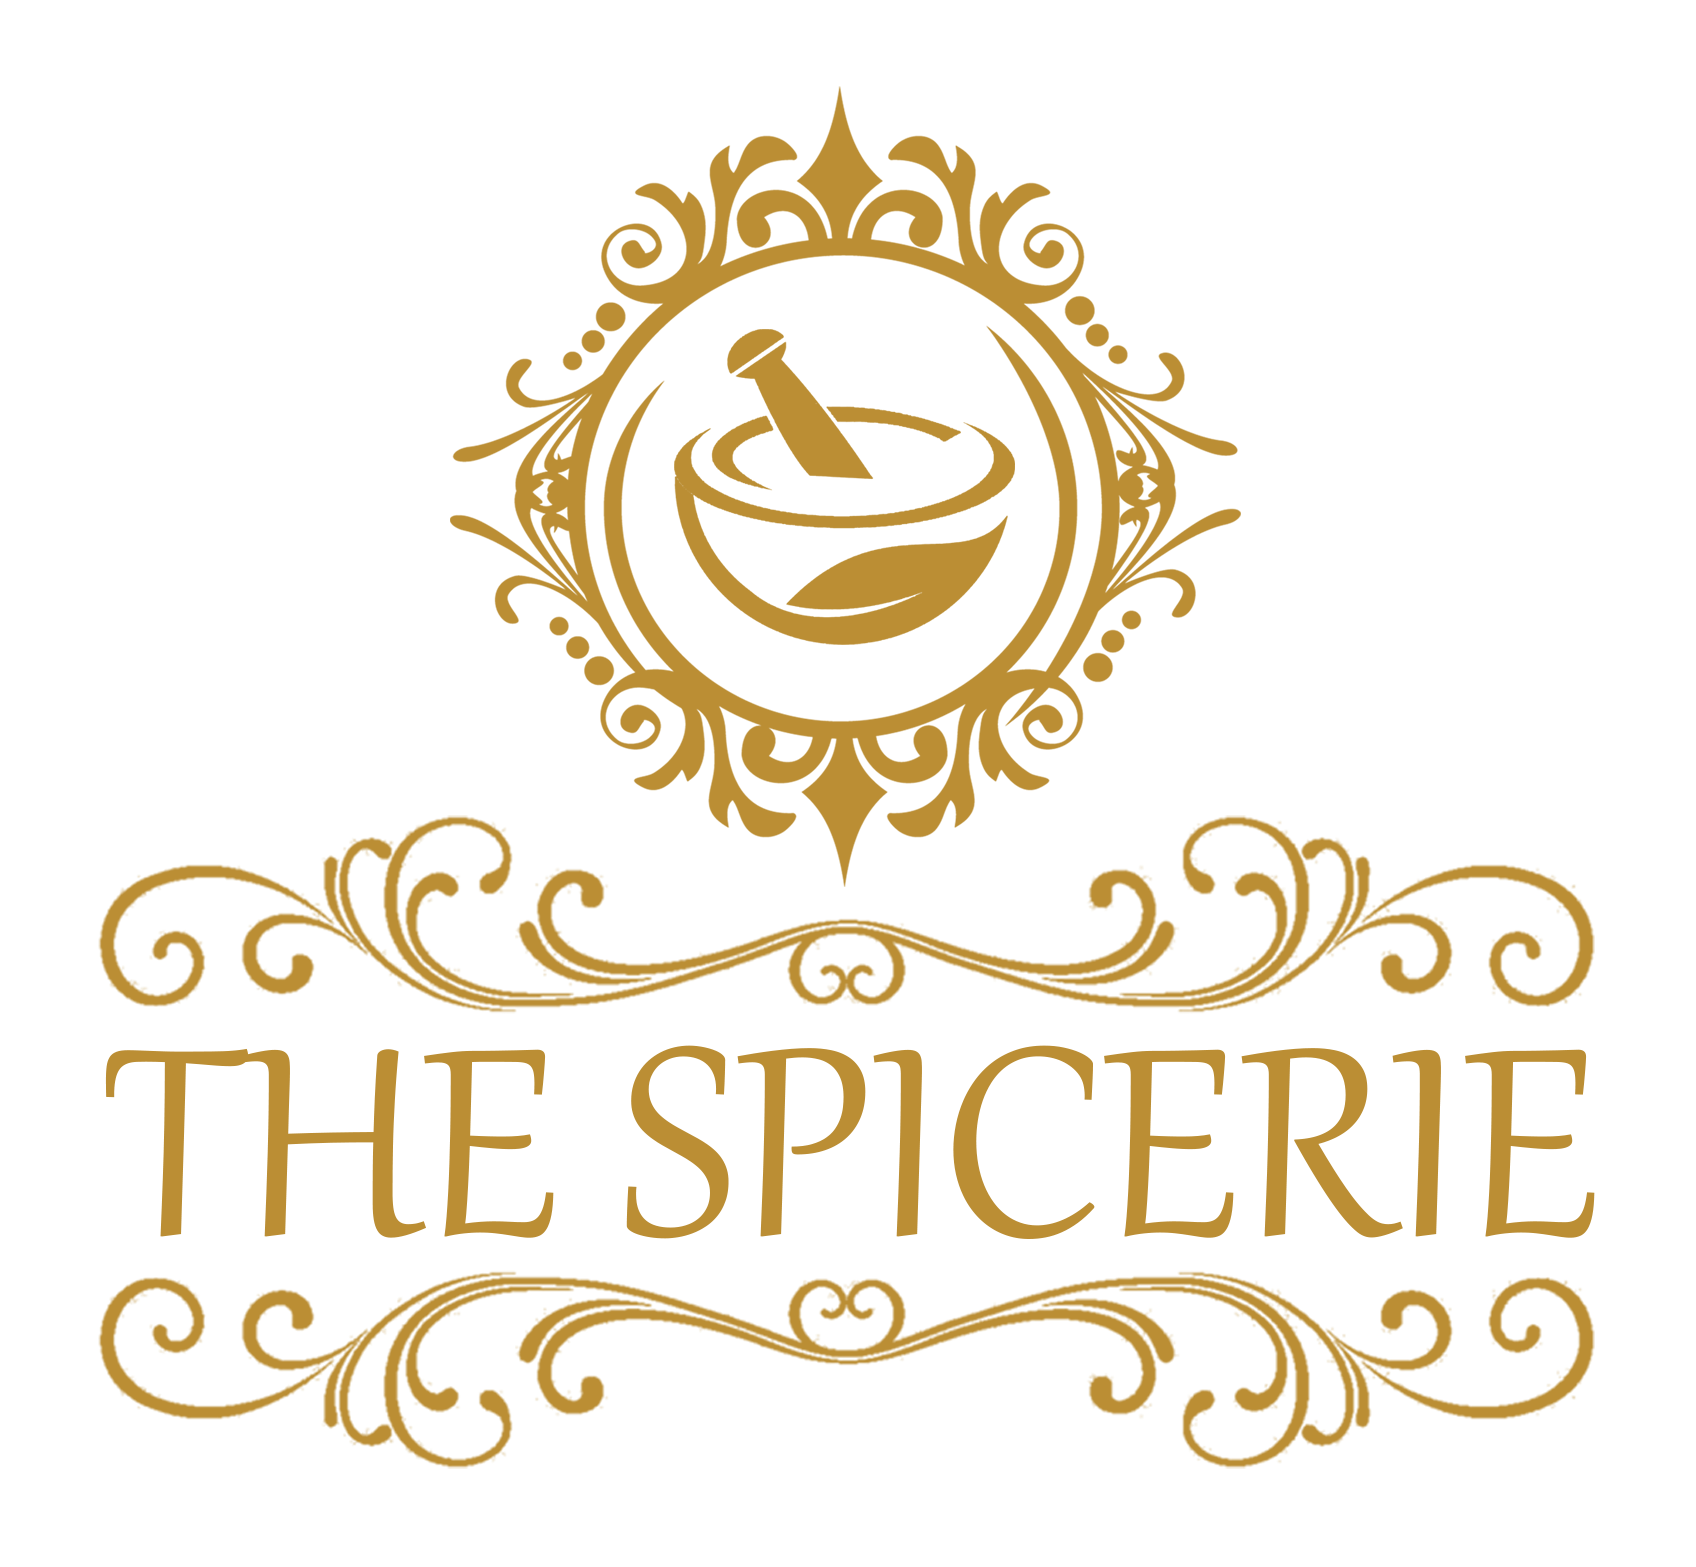 The Spicerie